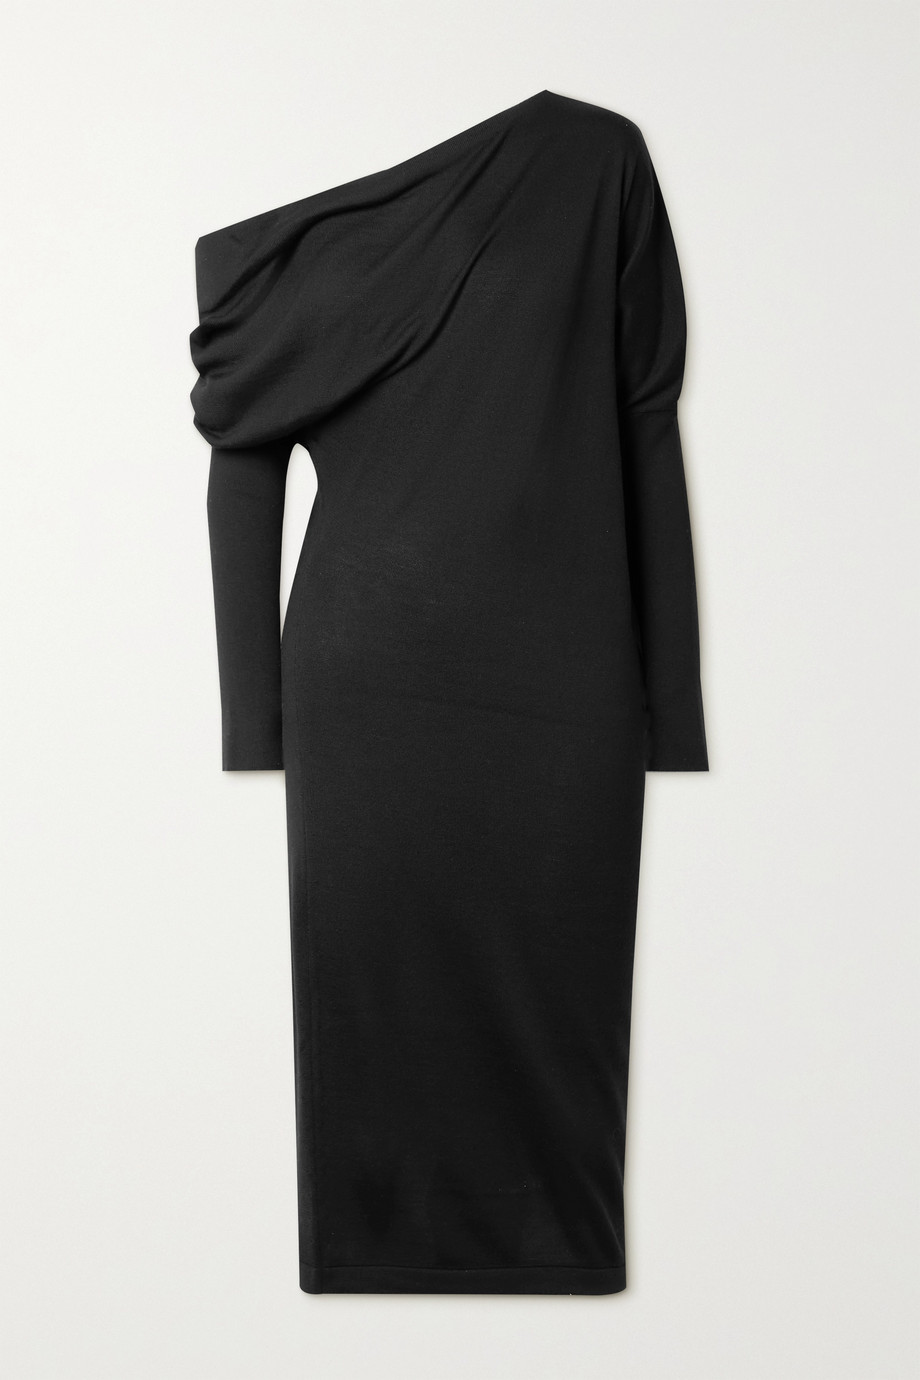 TOM FORD One-shoulder cashmere and silk-blend dress